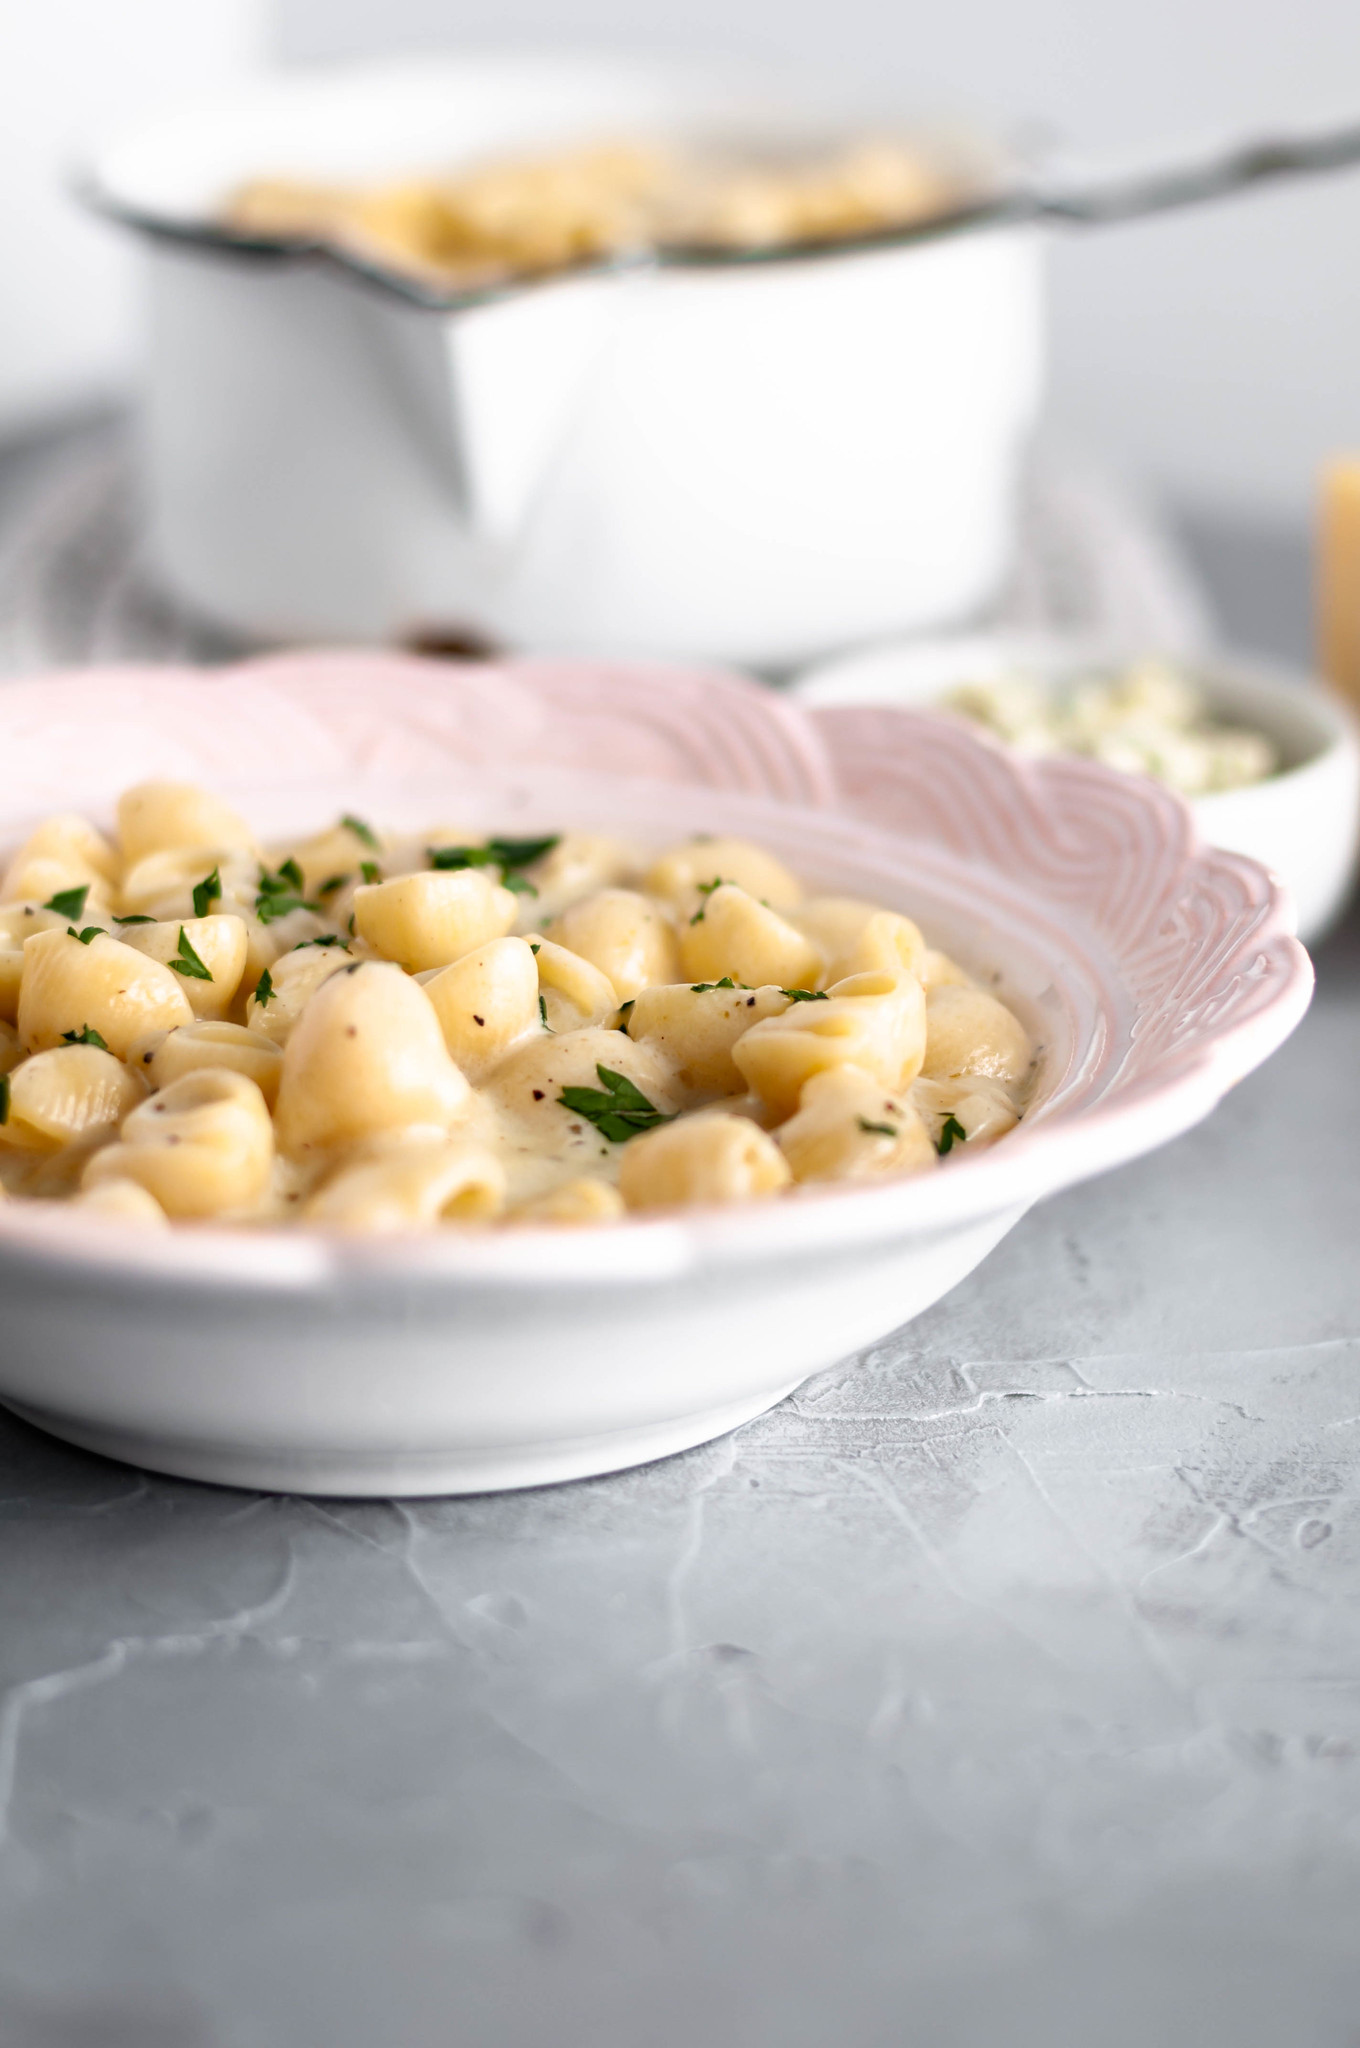 This Italian Mac and Cheese is the creamiest, cheesiest pasta around. Perfectly al dente pasta tossed in a sauce packed with several Italian cheeses and Italian seasonings.